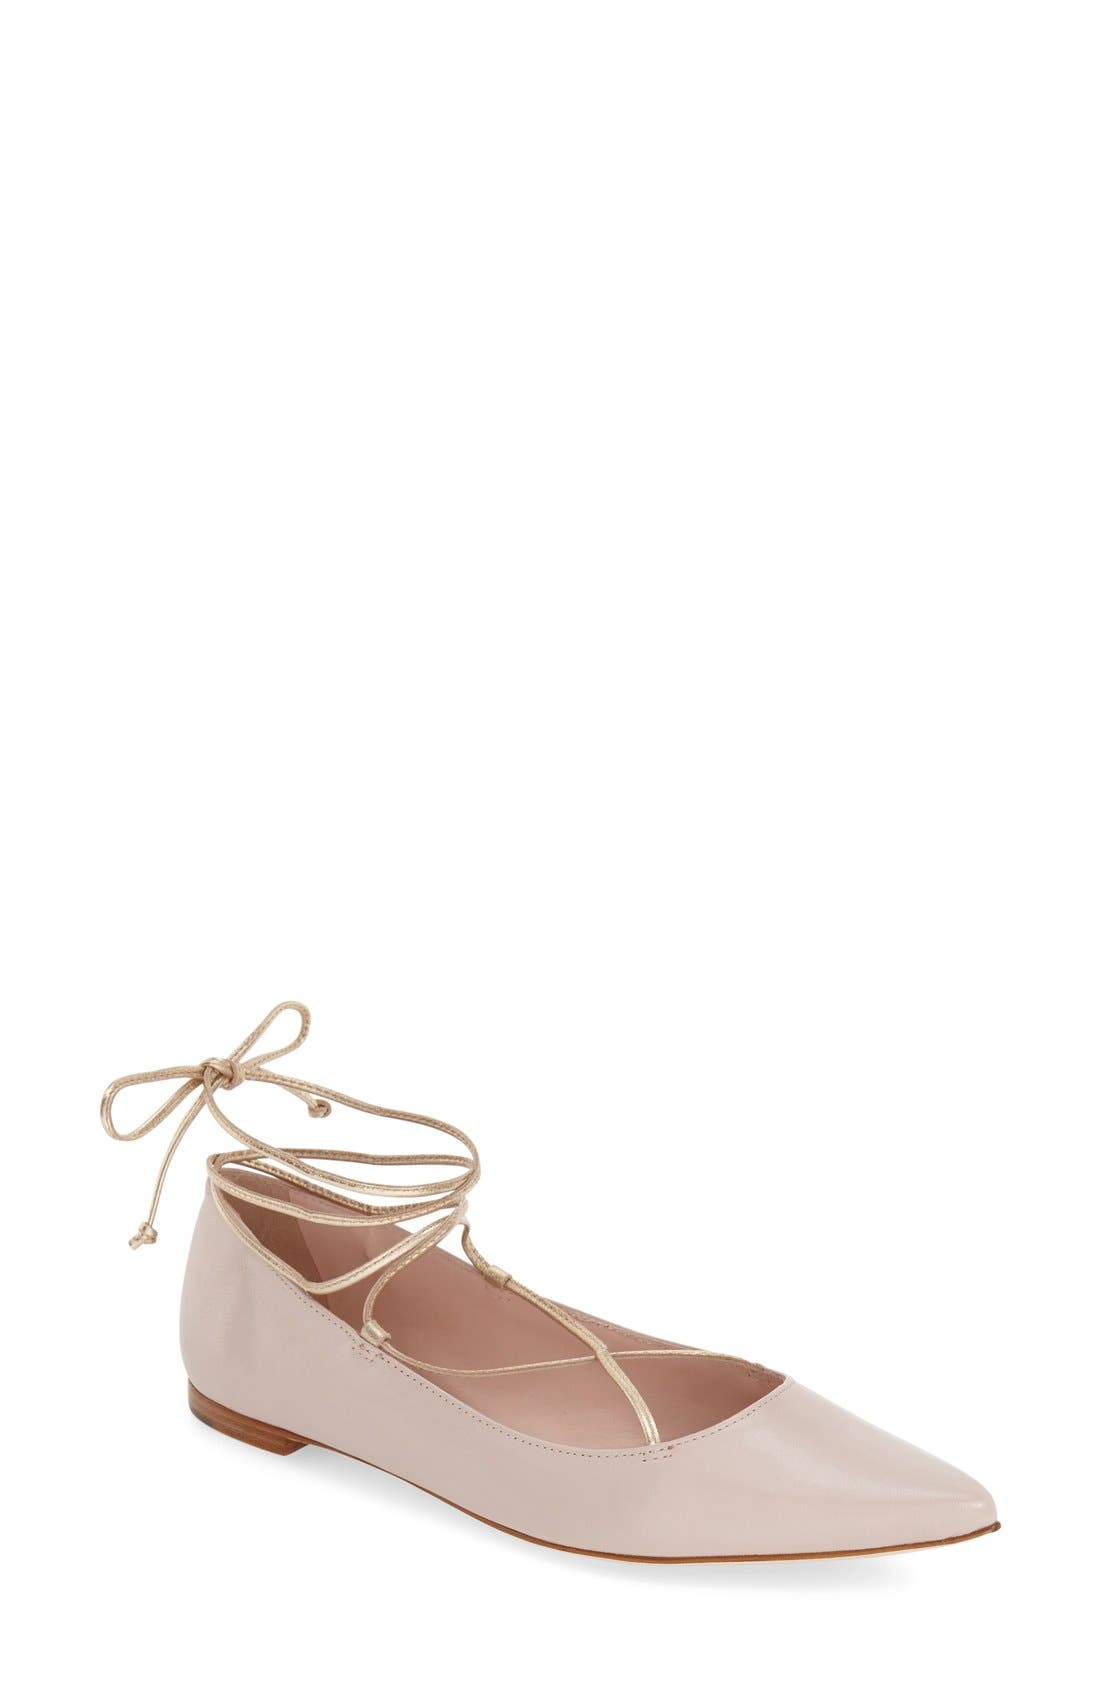 Alternate Image 1 Selected - kate spade new york 'genie' pointy toe lace up flat (Women)